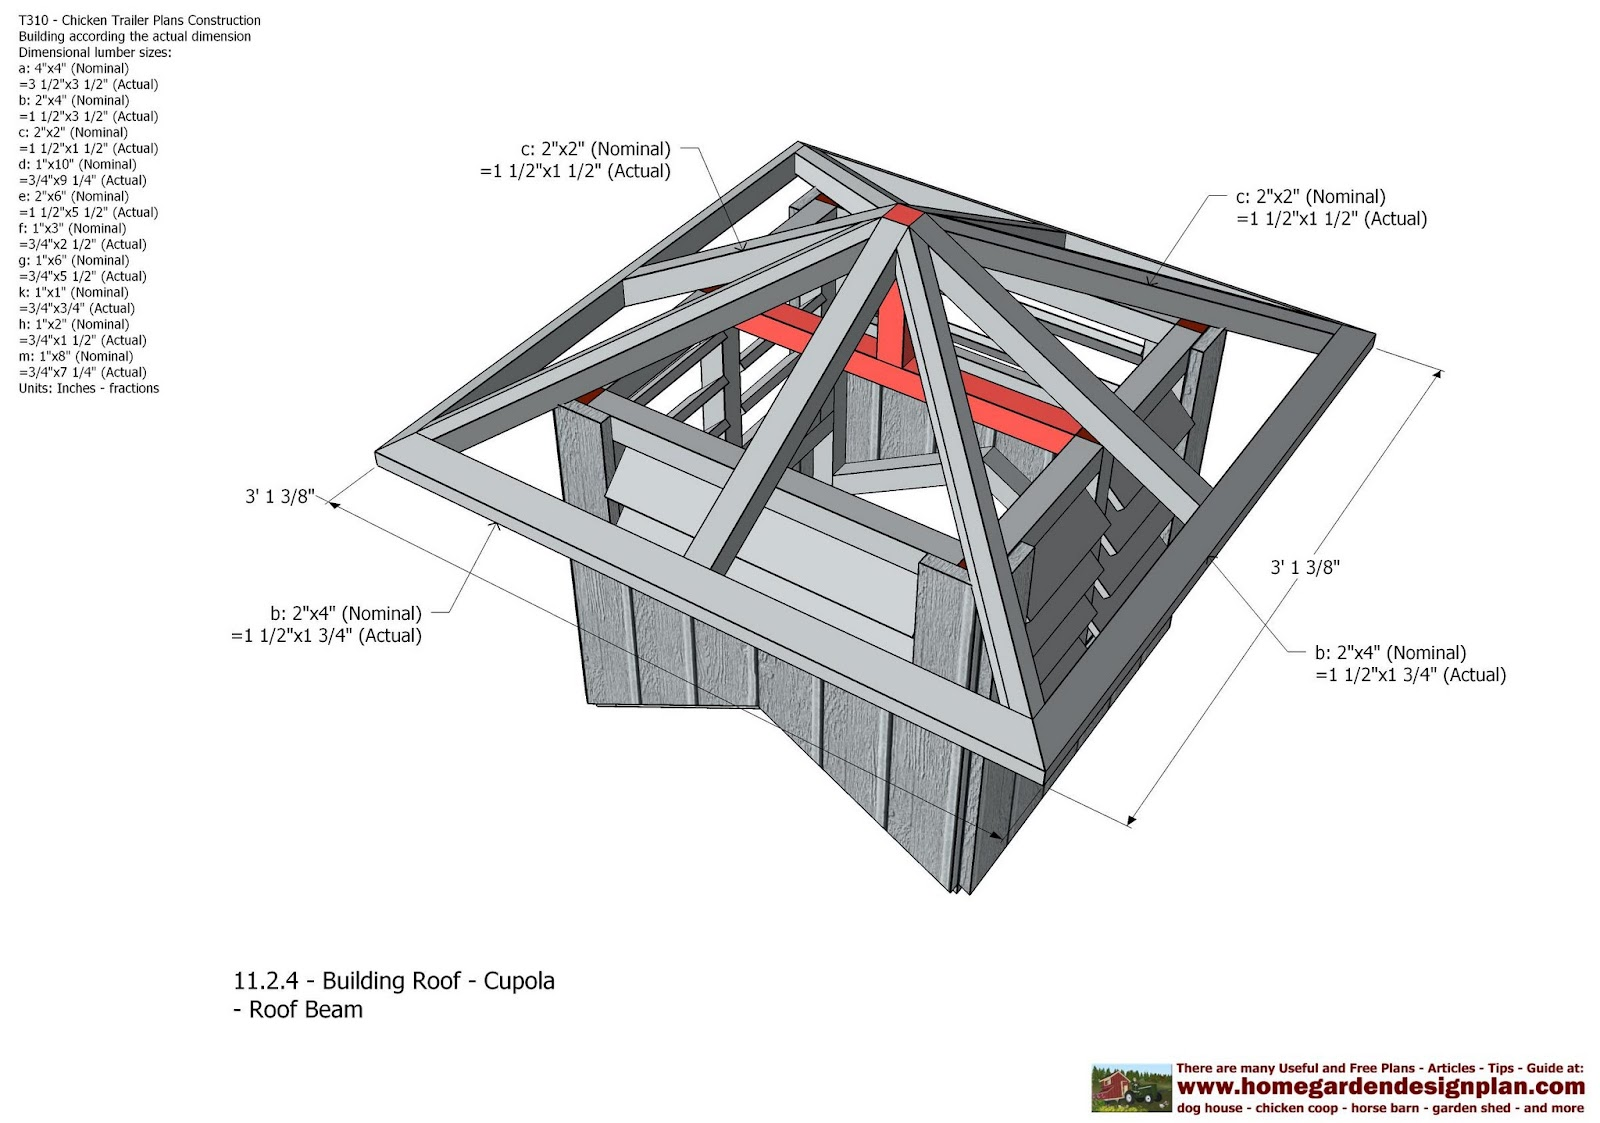 Shed plans building t310 chicken trailer plans for Free cupola blueprints